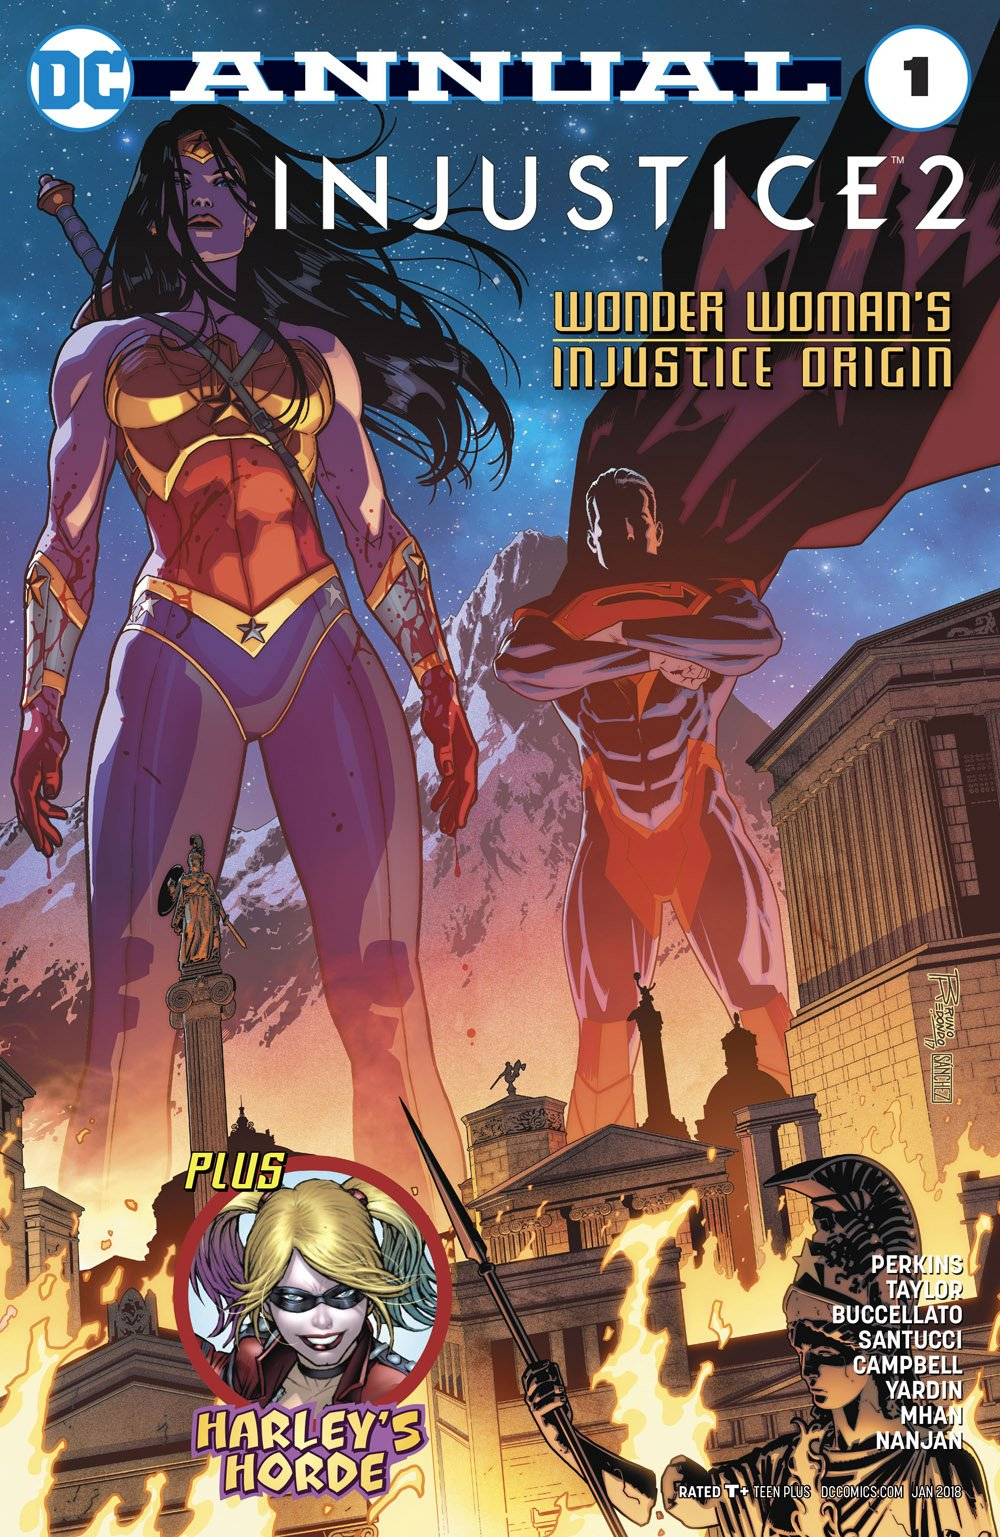 Injustice 2 Annual 1 (January 2018)